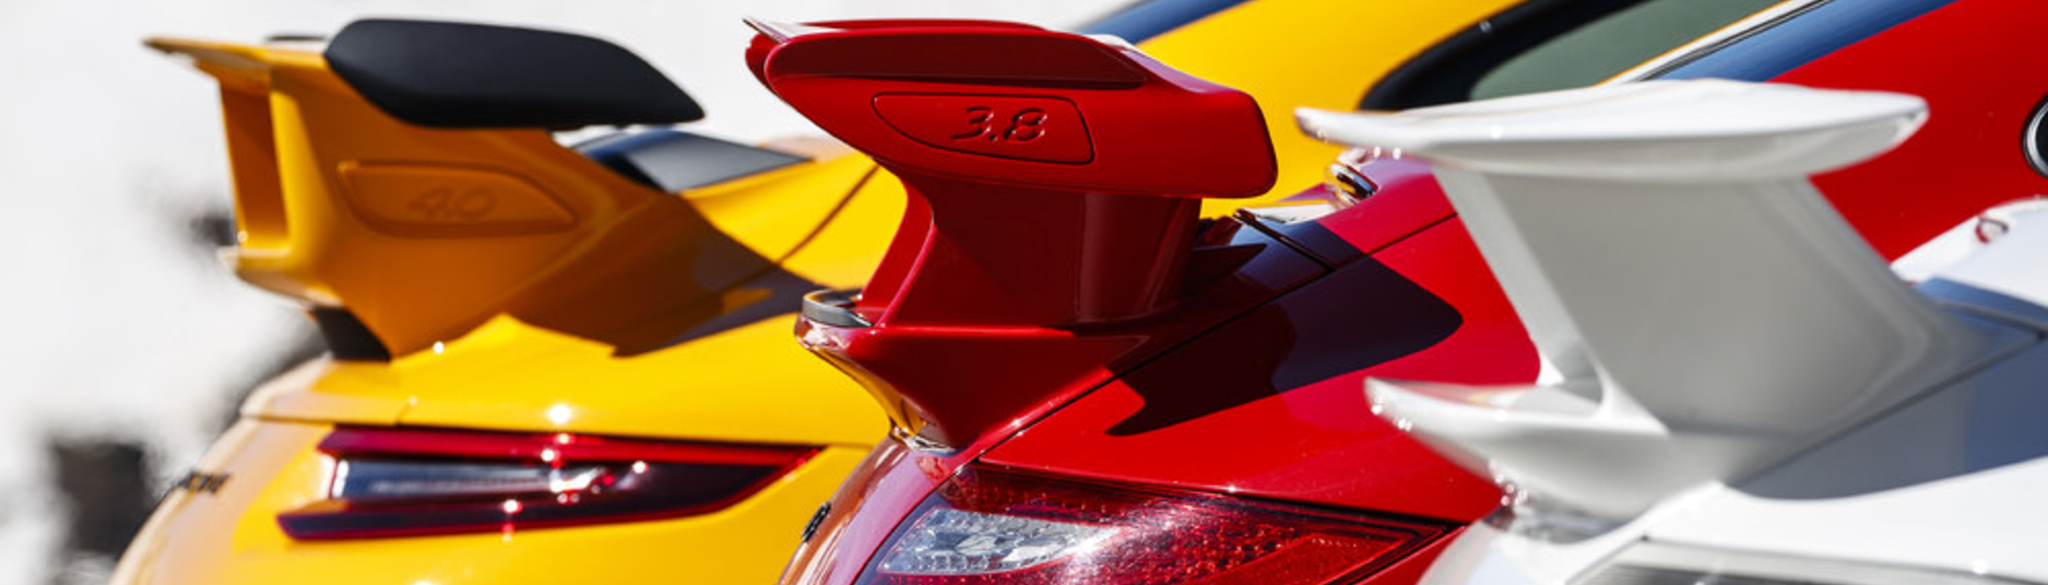 Celebrating 20 years of the Porsche 911 GT3 (1)2 (1)